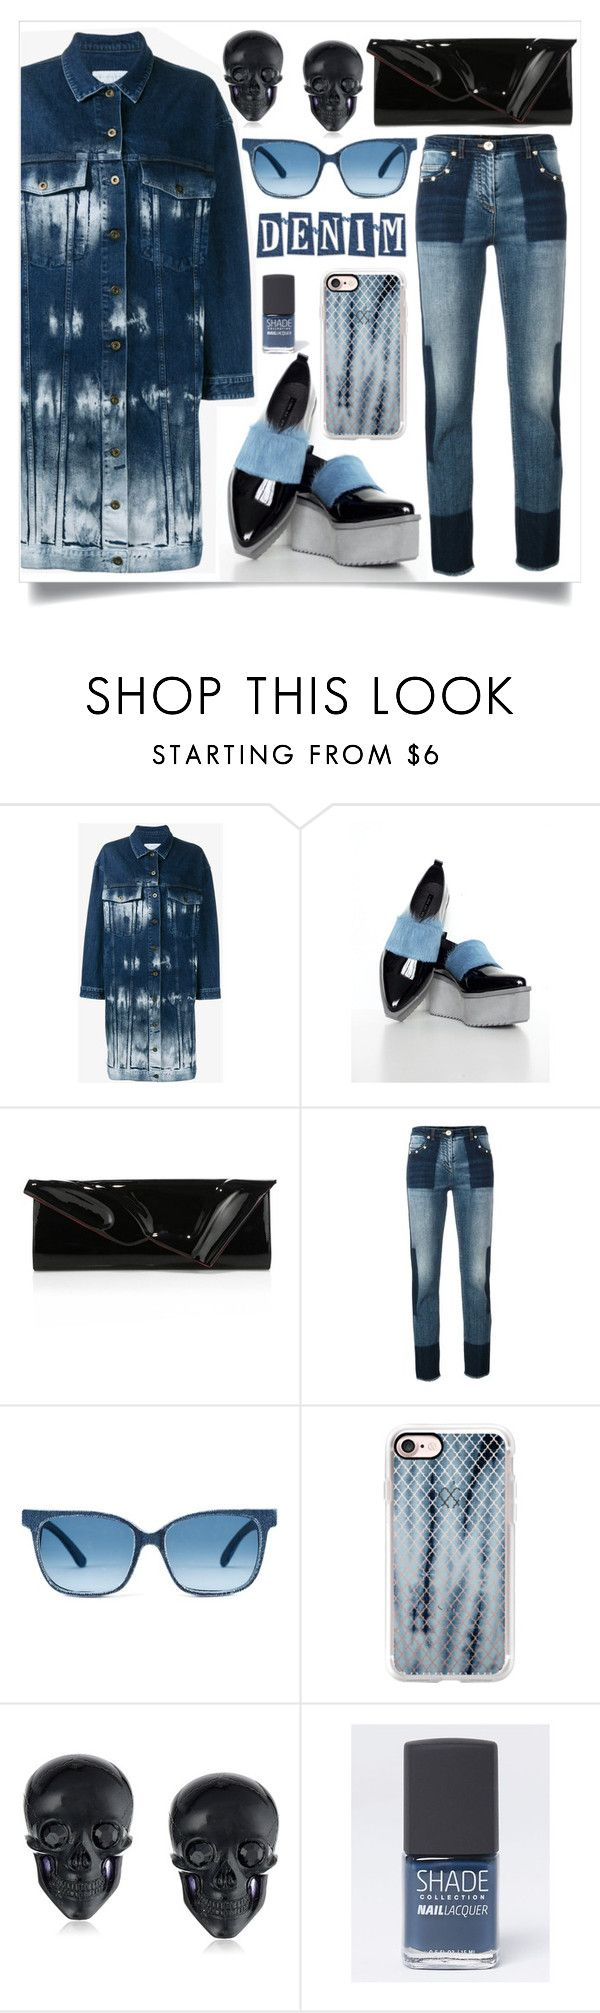 """Denim Jacket Bleached"" by skad183 ❤ liked on Polyvore featuring STELLA McCARTNEY, Jamie Wei Huang, Christian Louboutin, Versace, Casetify, Tarina Tarantino and Lane Bryant"